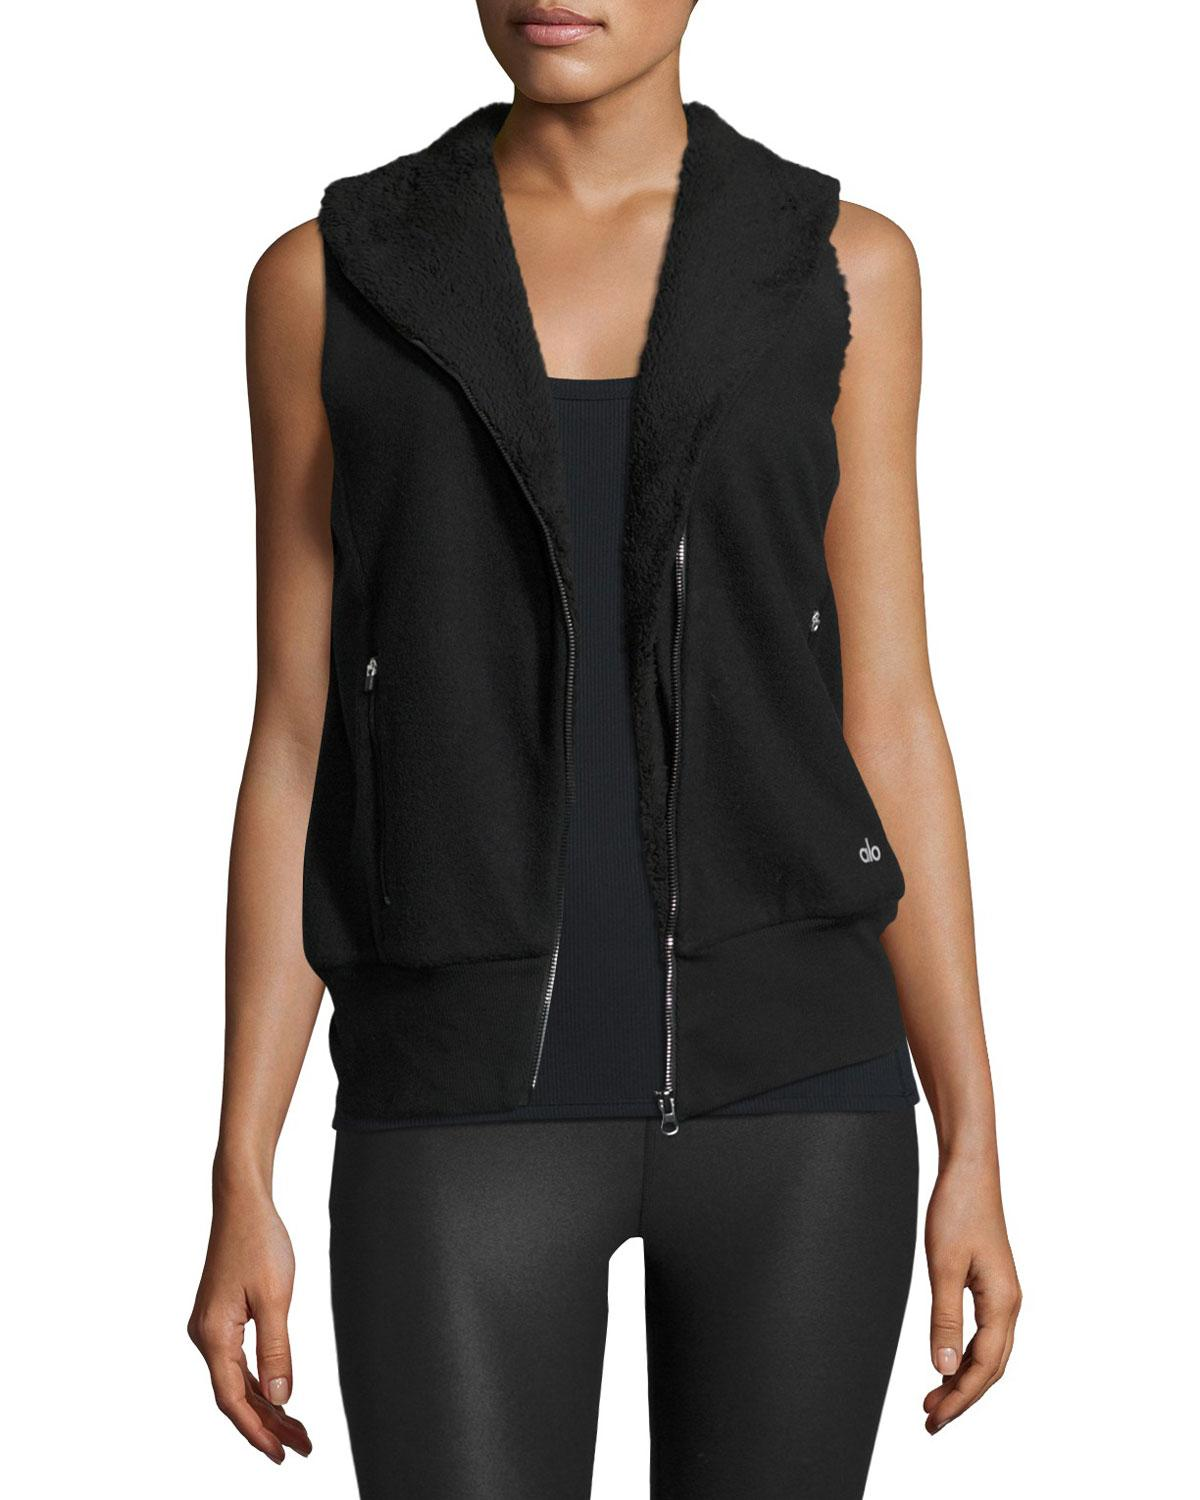 Alo Yoga Flat Iron Sherpa-lined Athletic Vest In Black